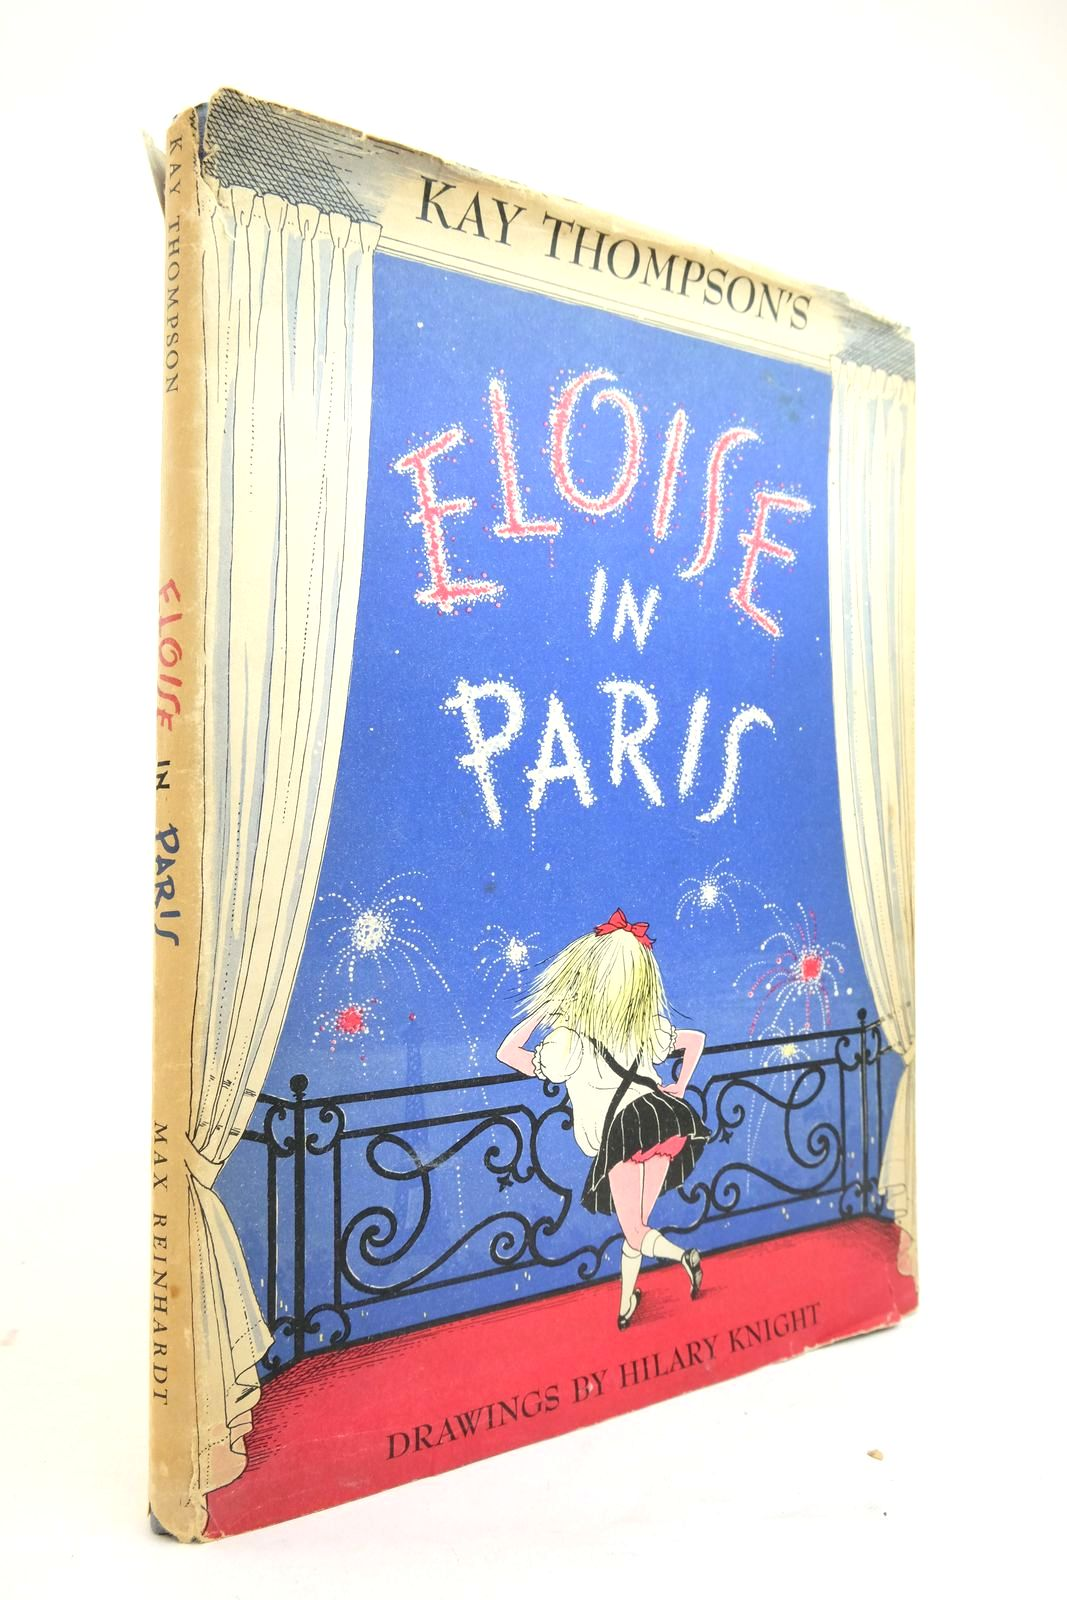 Photo of ELOISE IN PARIS written by Thompson, Kay illustrated by Knight, Hilary published by Max Reinhardt (STOCK CODE: 2134712)  for sale by Stella & Rose's Books